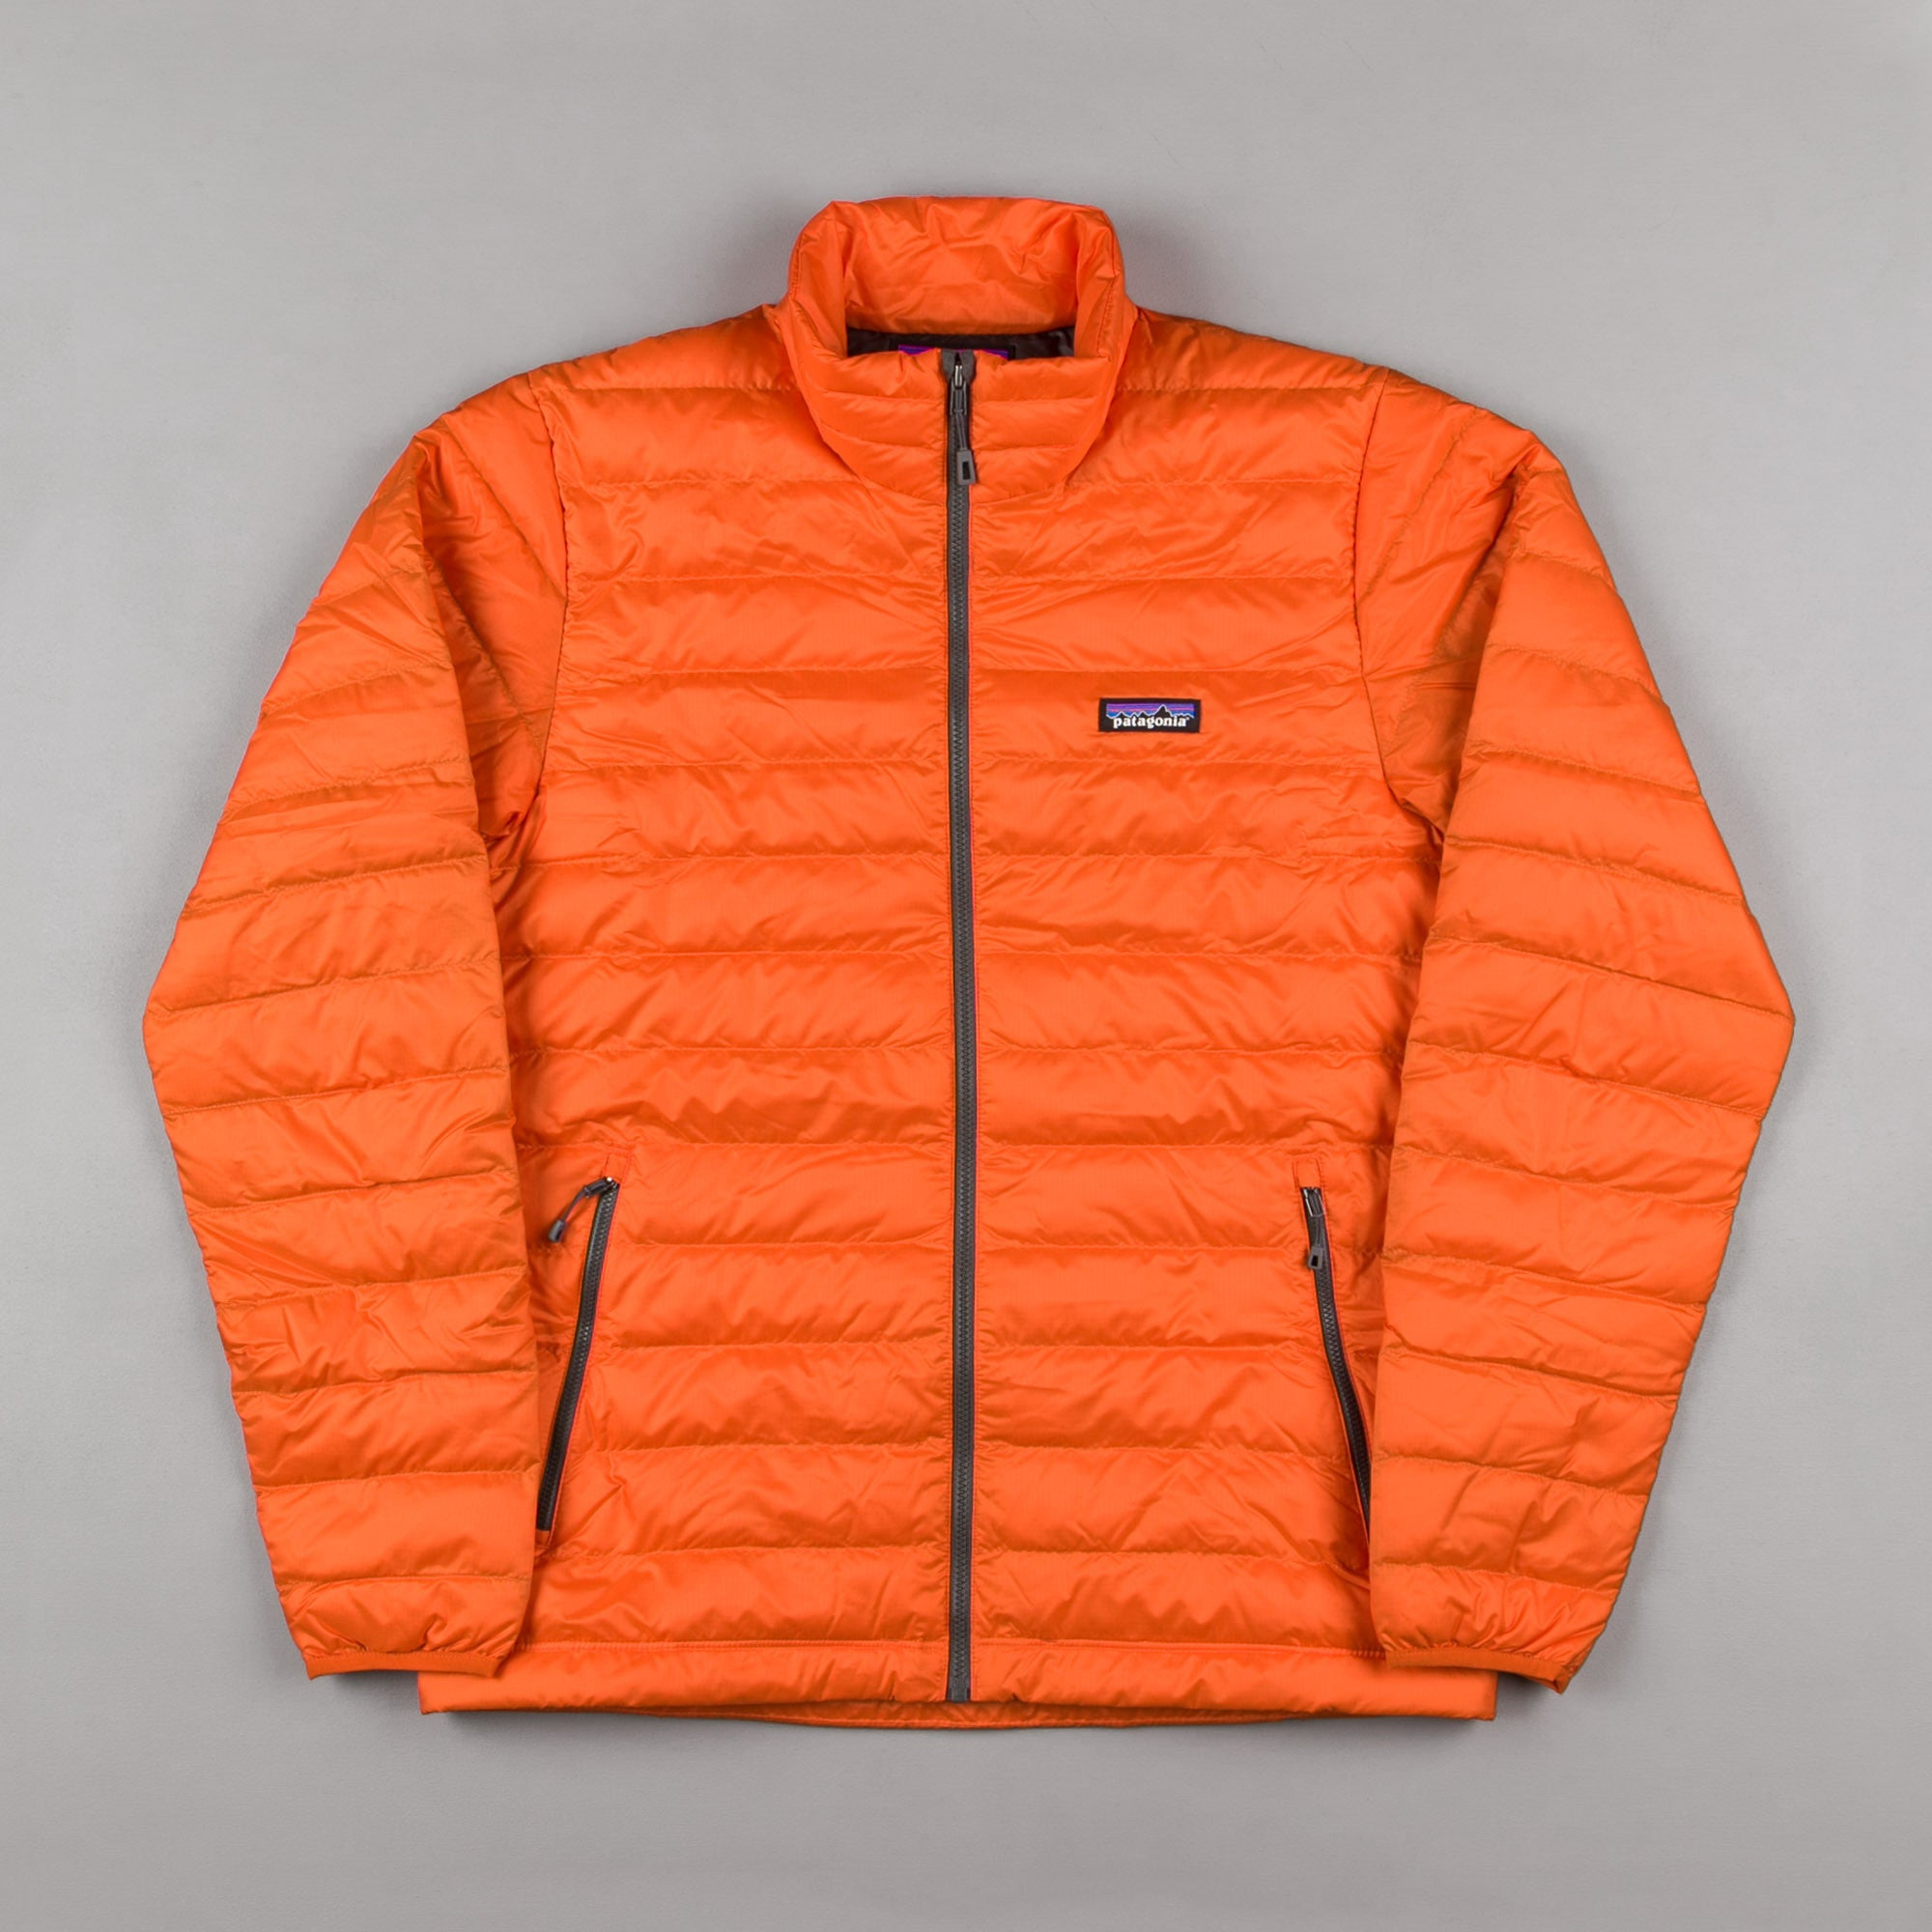 Patagonia Down Sweater Jacket - Cusco Orange